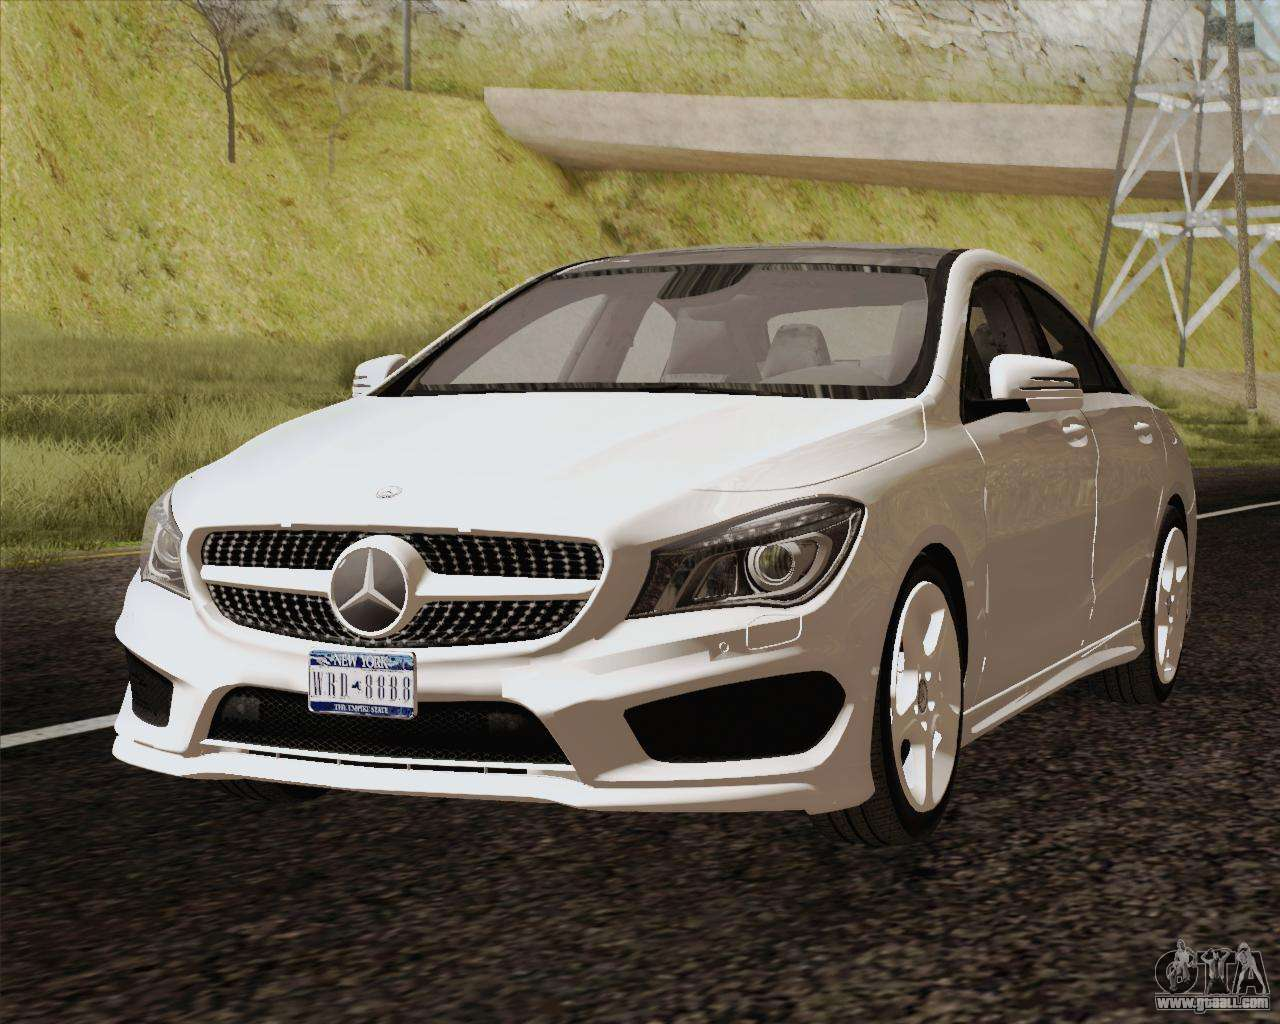 All Types 2013 mercedes cla : All Types » 2013 Cla - Car and Auto Pictures All Types All Models